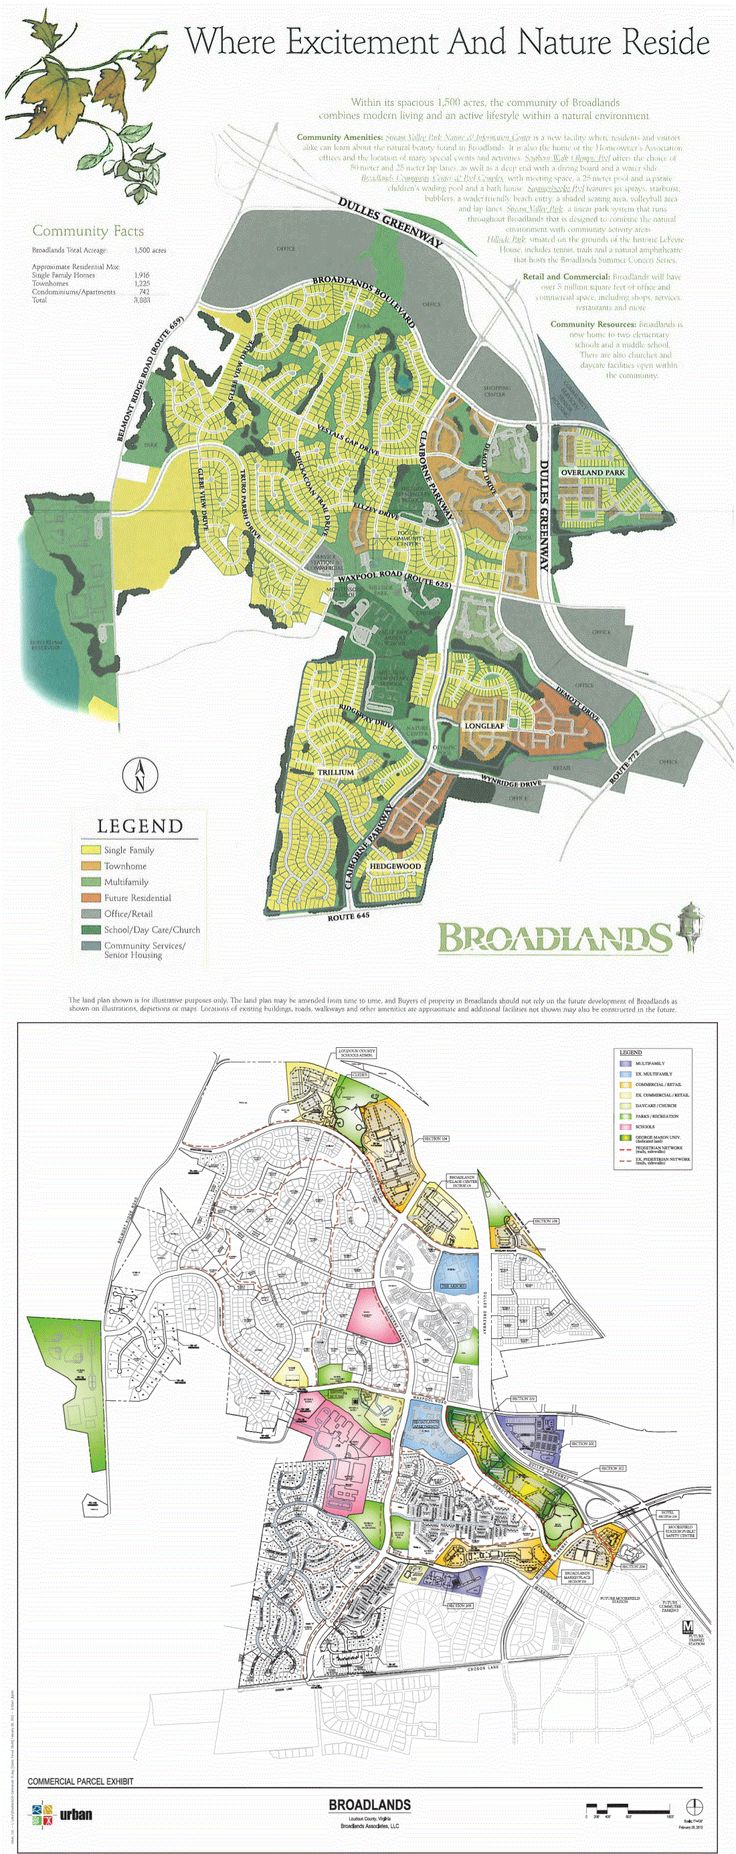 BEST PRACTICES in conservation of intangible property rights and preservation of nature's wetland legacy for our children's children -- map of mixed-use Broadlands HOA, Ashburn, Virginia